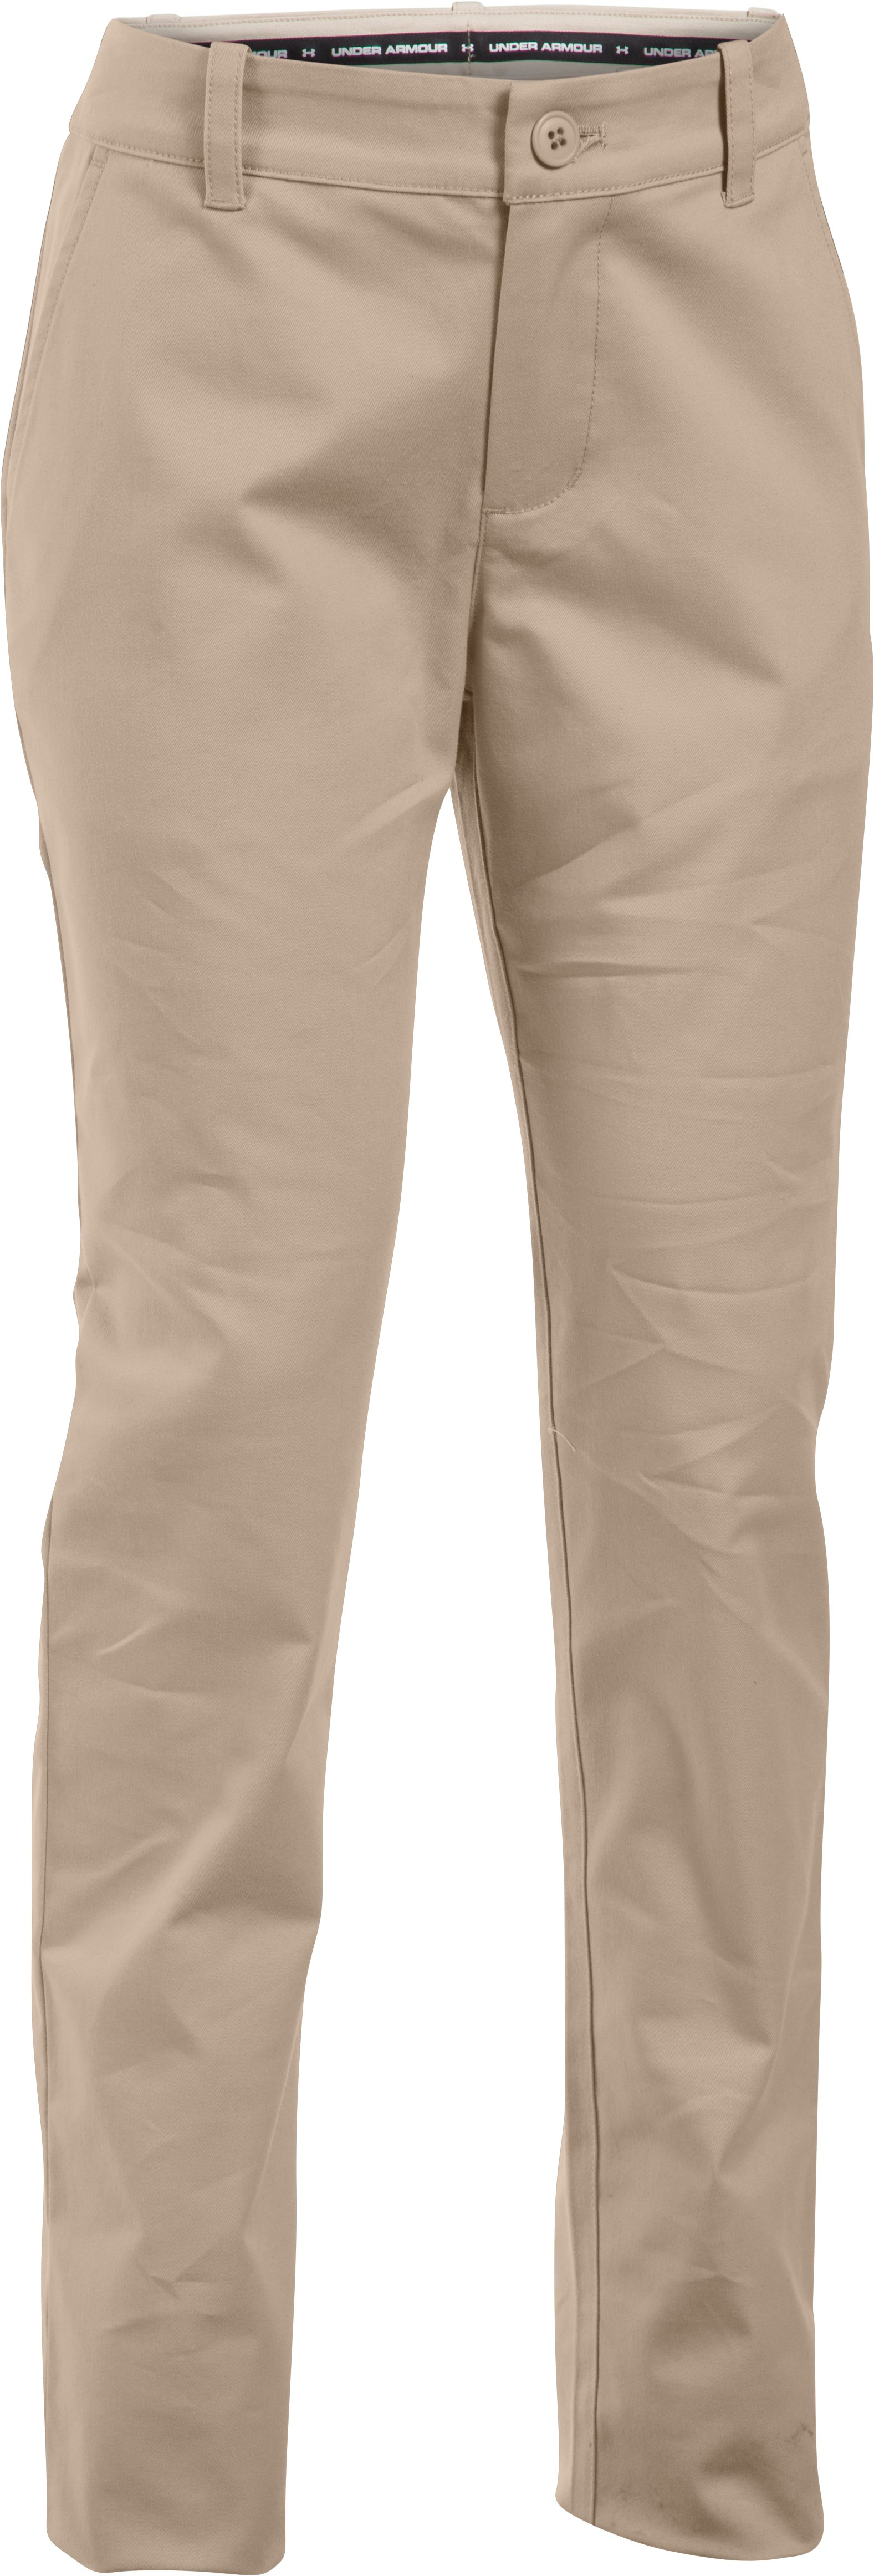 Girls' UA Uniform Chino Pants – Plus Size, Desert Sand,